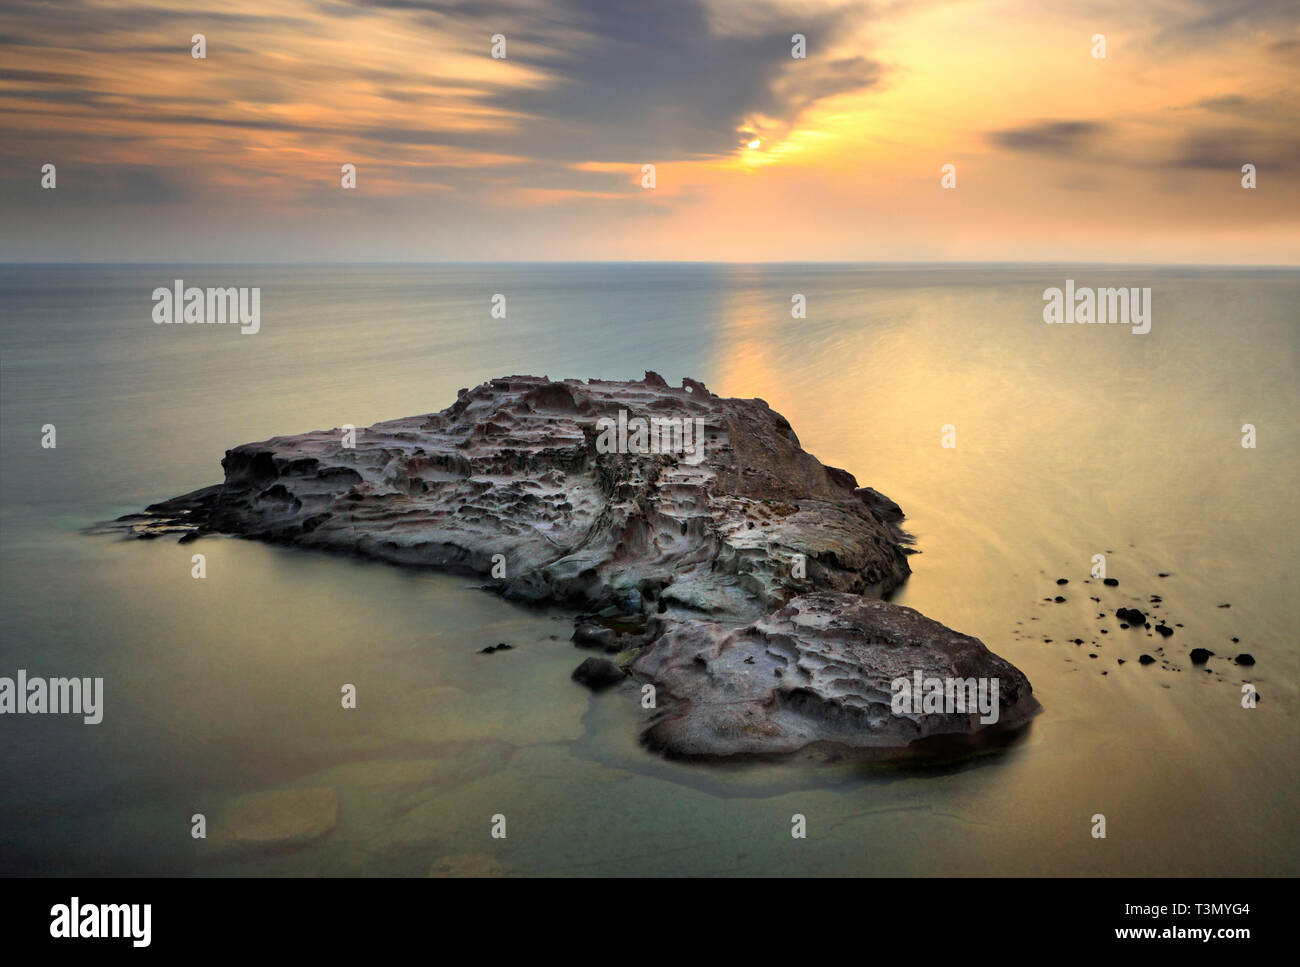 A small island just off the rocky coast of Torre Argentina, not far from Bosa in Sardinia, Italy. Taken on an evening of mid September 90 seconds of e - Stock Image